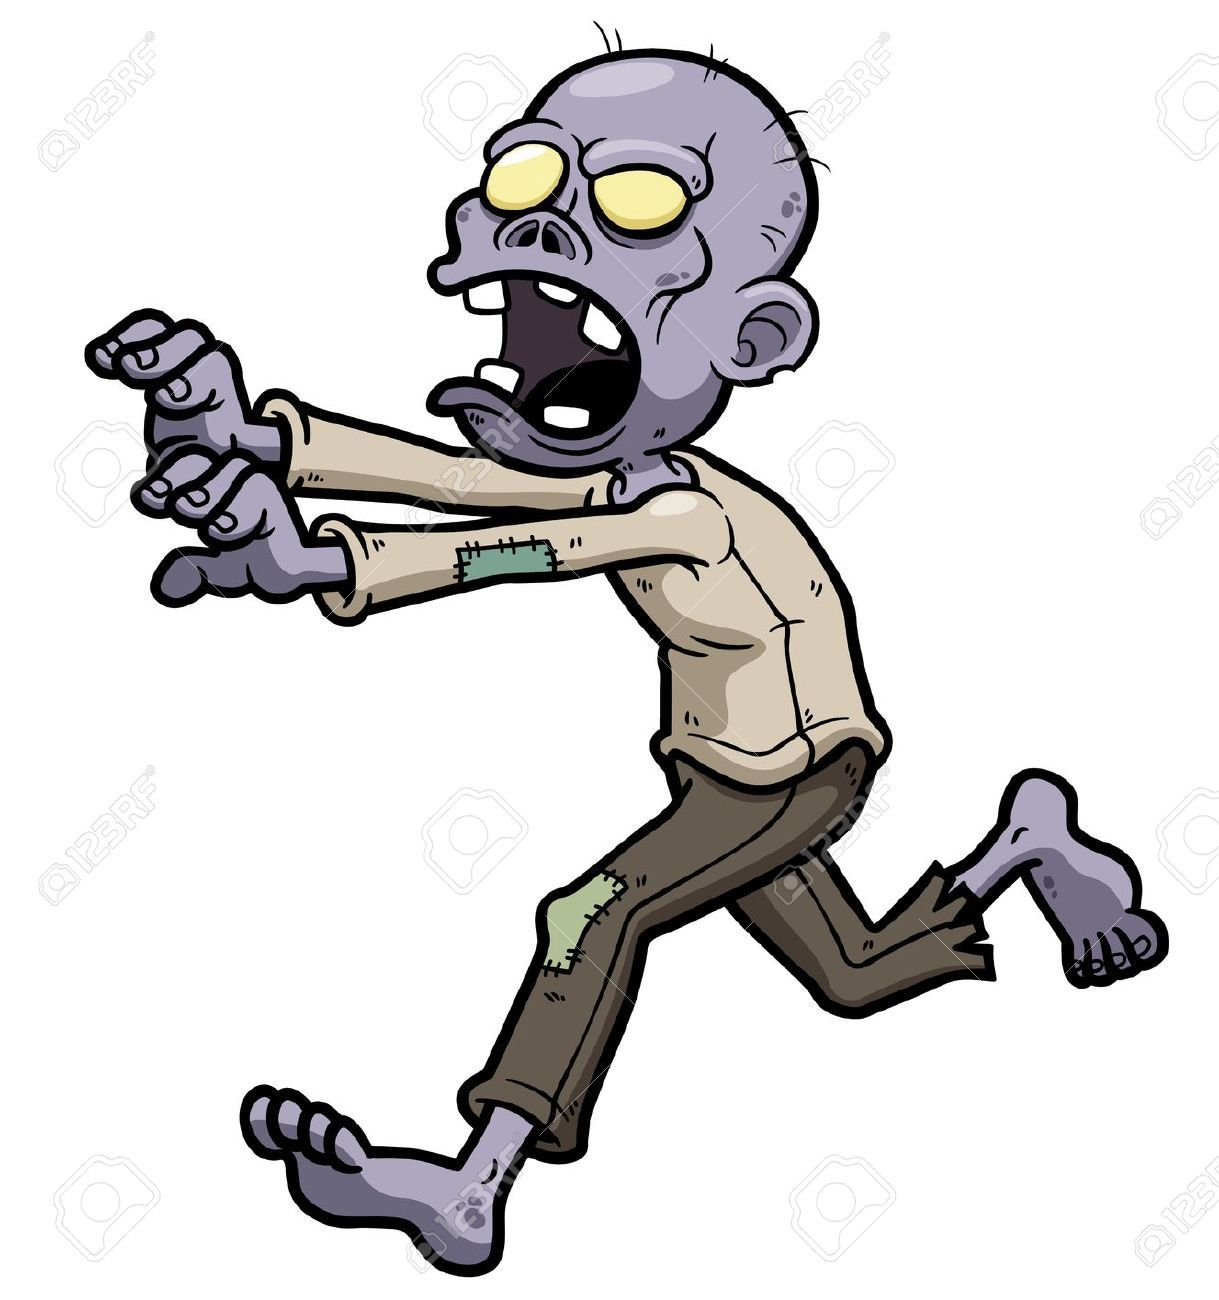 Zombie Cartoon Cliparts, Stock Vector And Royalty Free.